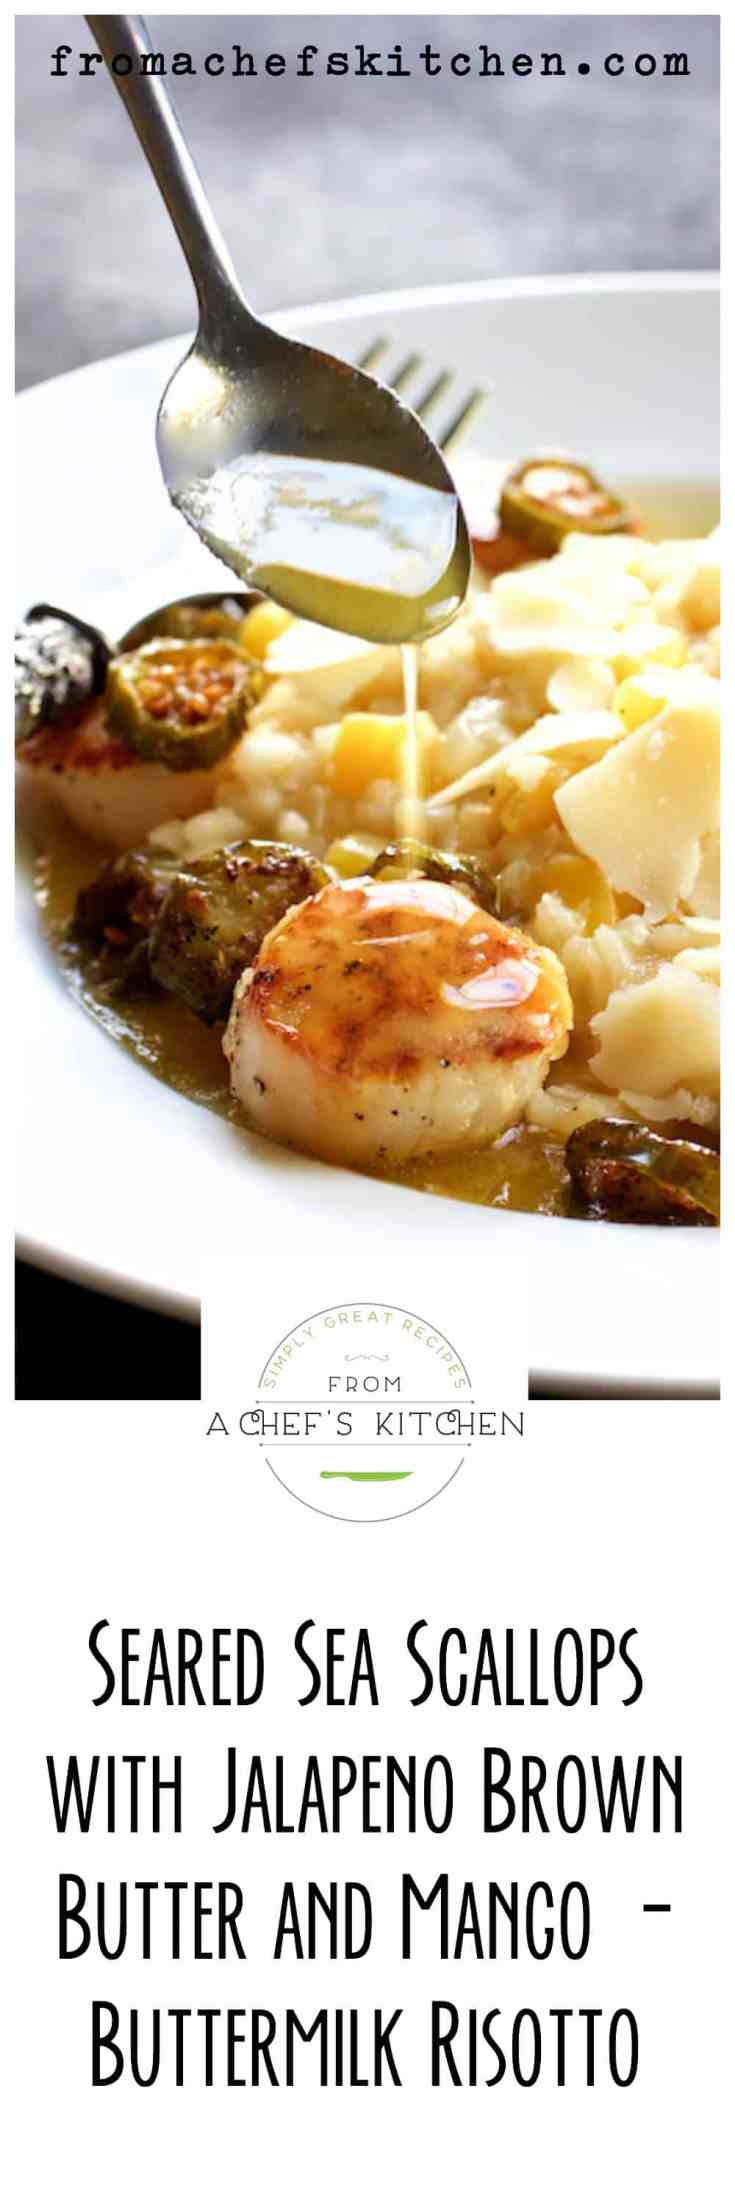 Seared Sea Scallops with Jalapeno Brown Butter and Mango Buttermilk Risotto is a lovely and flavorful dinner for two that's perfect for a memorable evening! #scallops #seascallops #jalapeno #brownbutter #risotto #datenightdinners